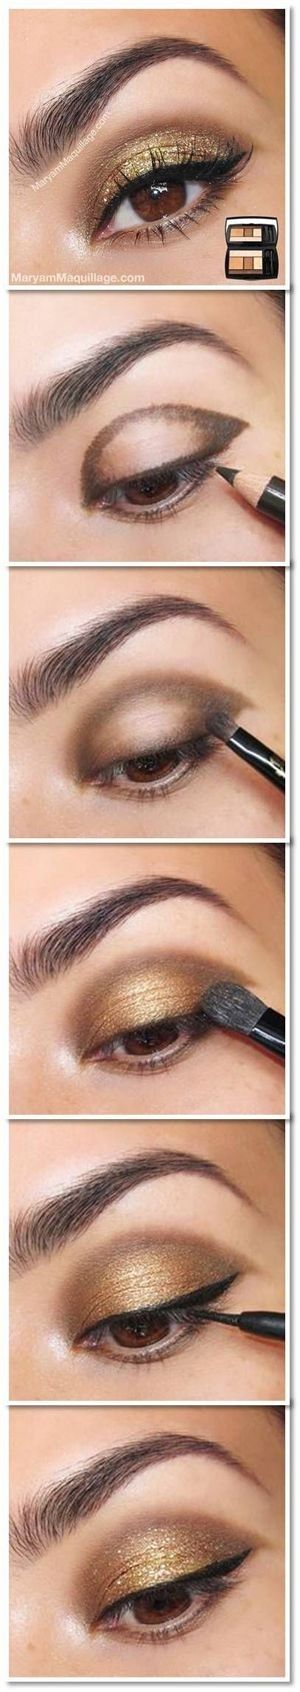 How to Apply Gold Eye Makeup - Tutorial with Pictures